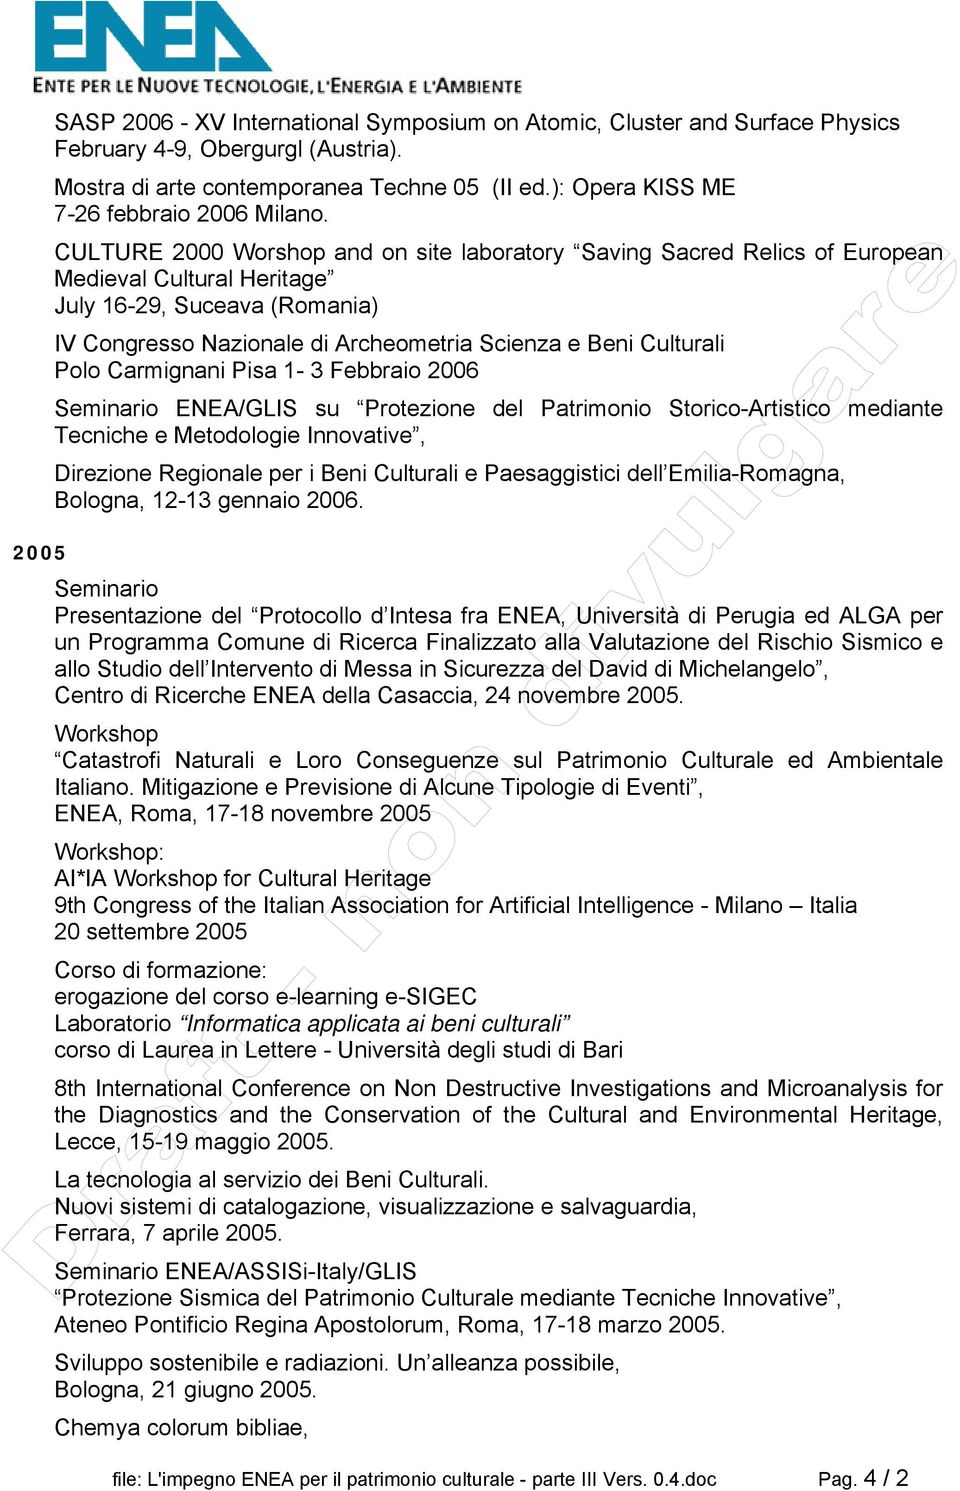 CULTURE 2000 Worshop and on site laboratory Saving Sacred Relics of European Medieval Cultural Heritage July 16-29, Suceava (Romania) IV Congresso Nazionale di Archeometria Scienza e Beni Culturali